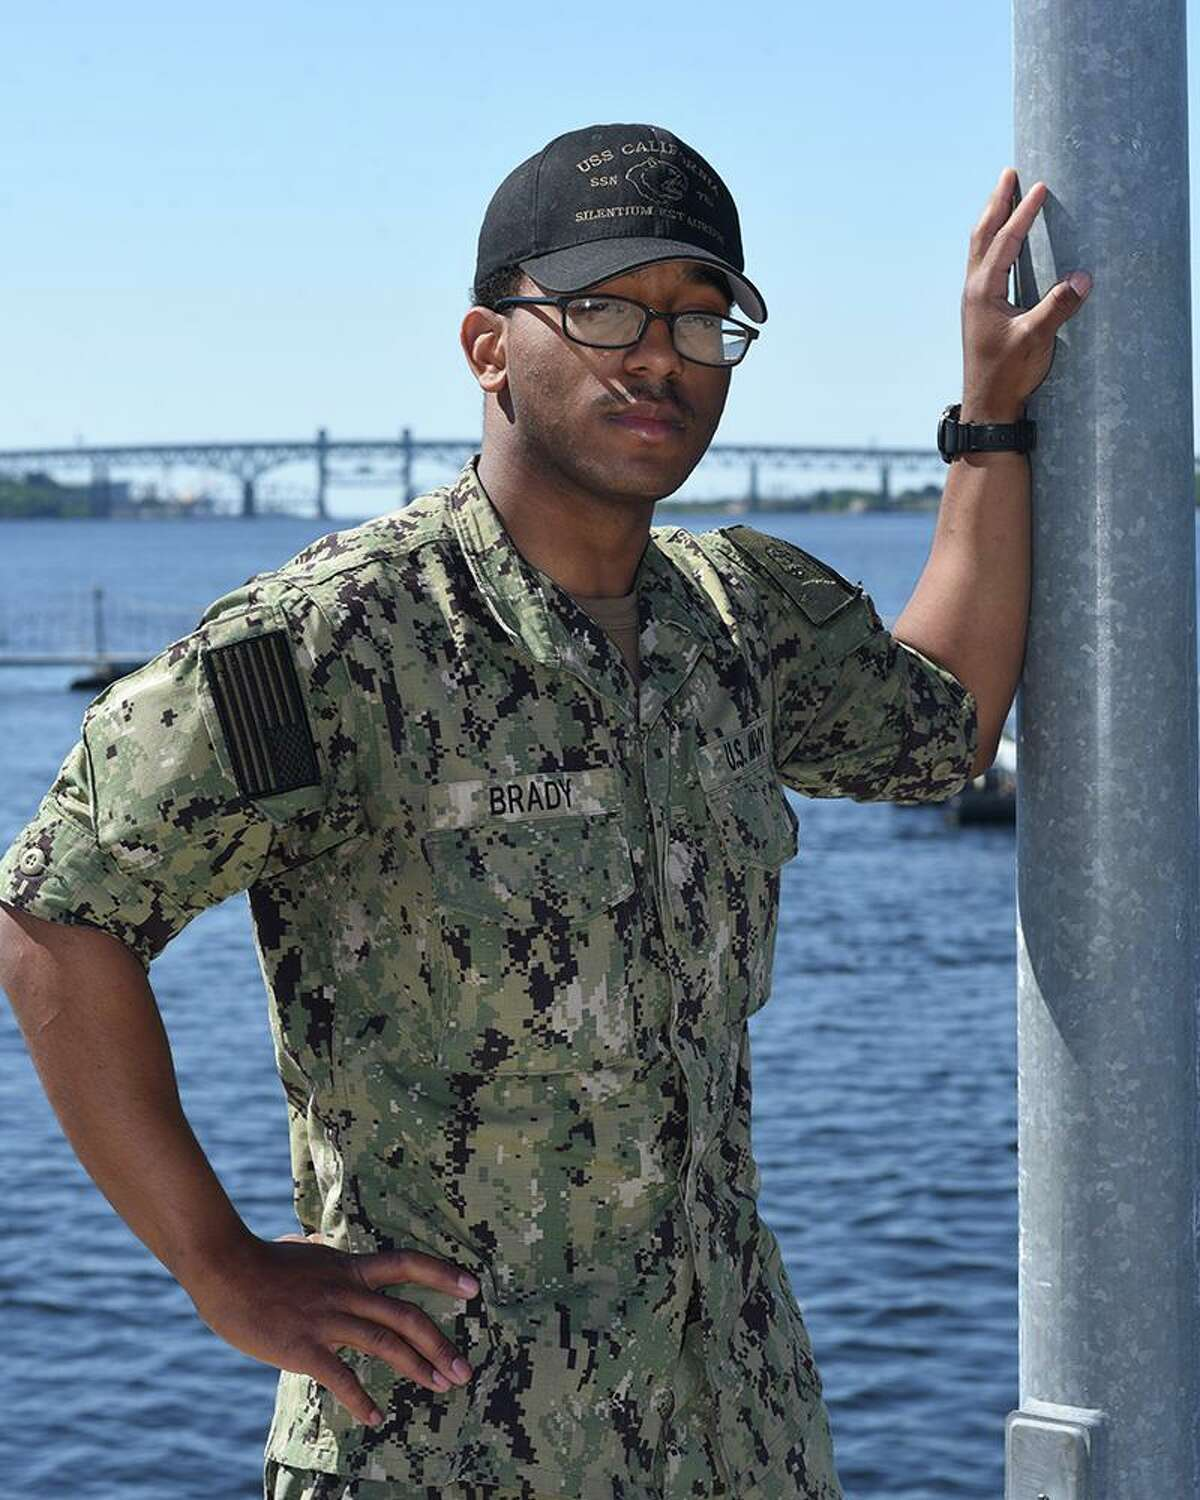 Seaman Bryce Brady, a 2019 George Bush High School graduate, joined the Navy one year ago. He serves the U.S. Navy aboard the USS California, one of the world's most advanced nuclear-powered submarines.